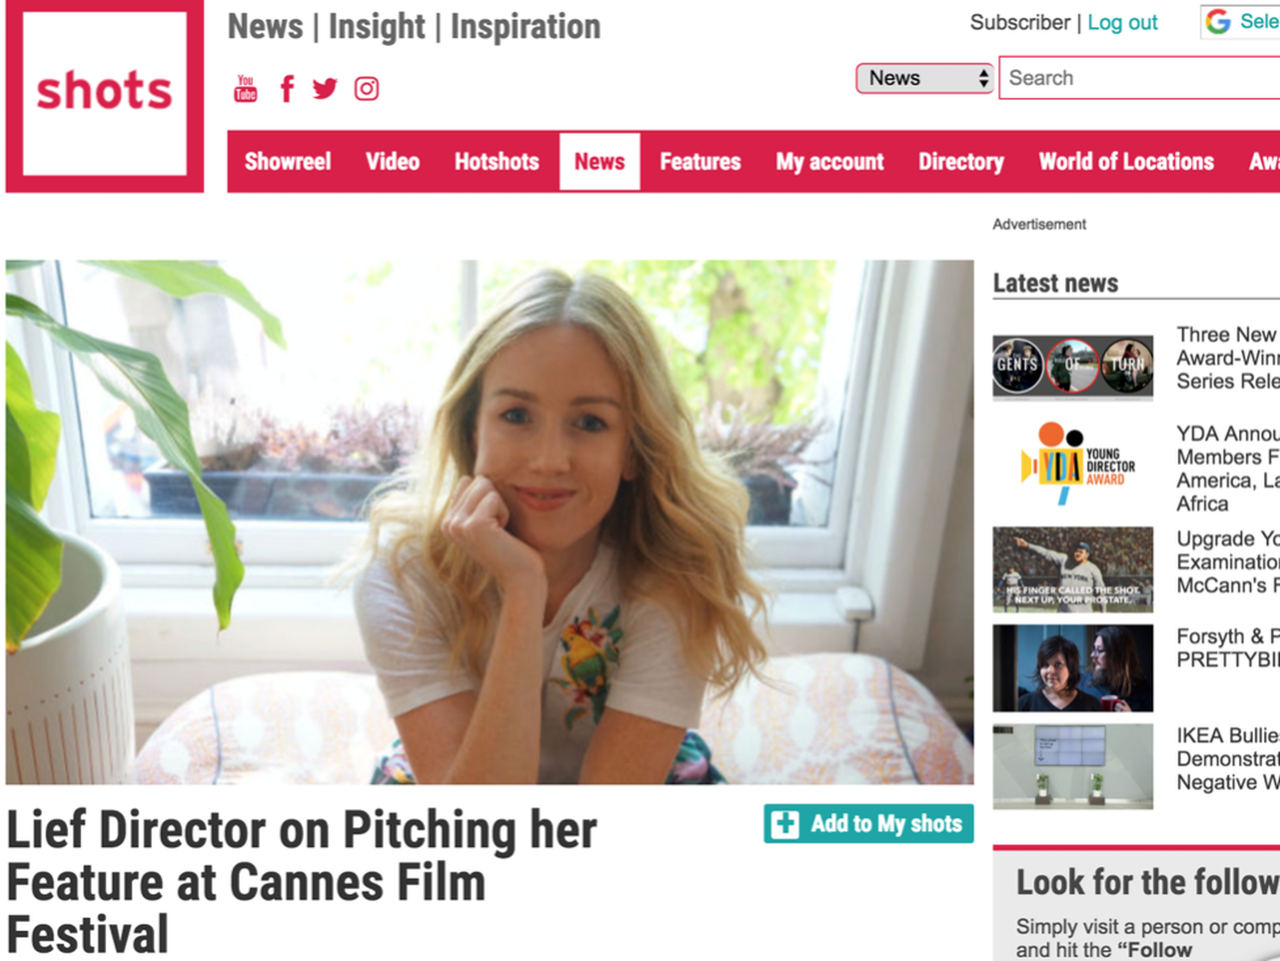 Leonora Lonsdale breaks through to Cannes' Film Festival!